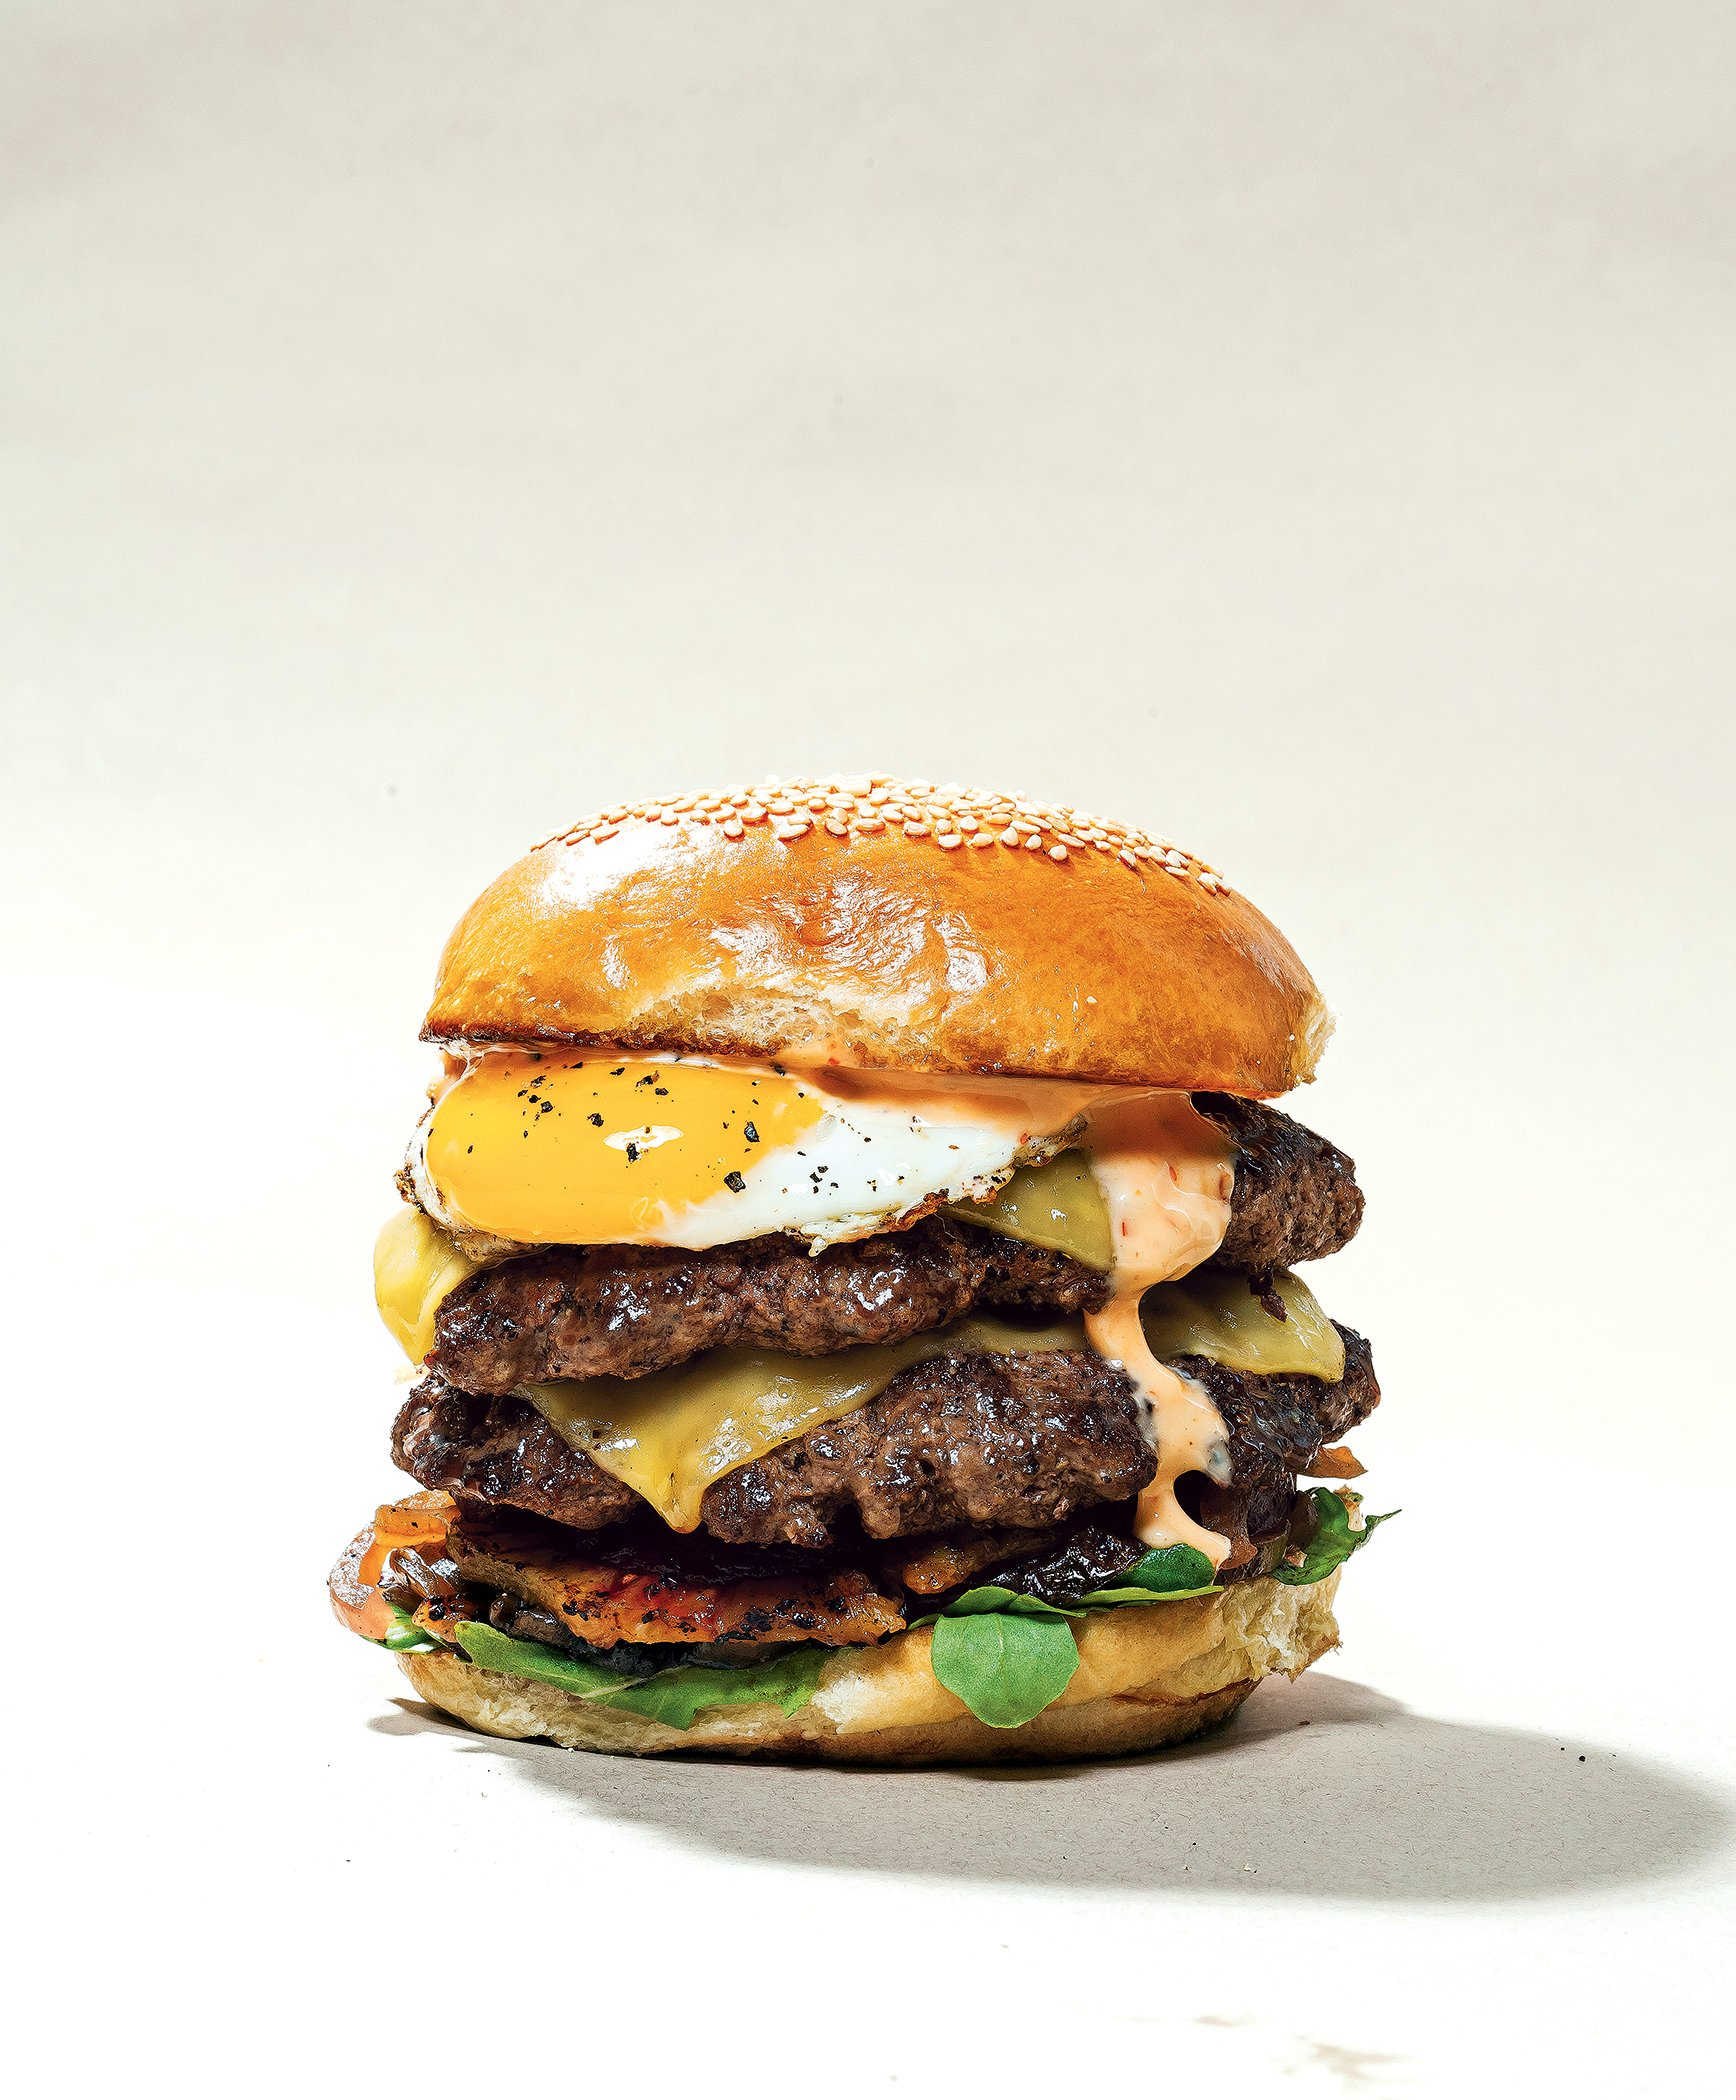 """""""Alfie's Bun"""" at Lucky Buns. Photograph by Scott Suchman. Food styling by Nicole Bryant at The Artist Agency."""